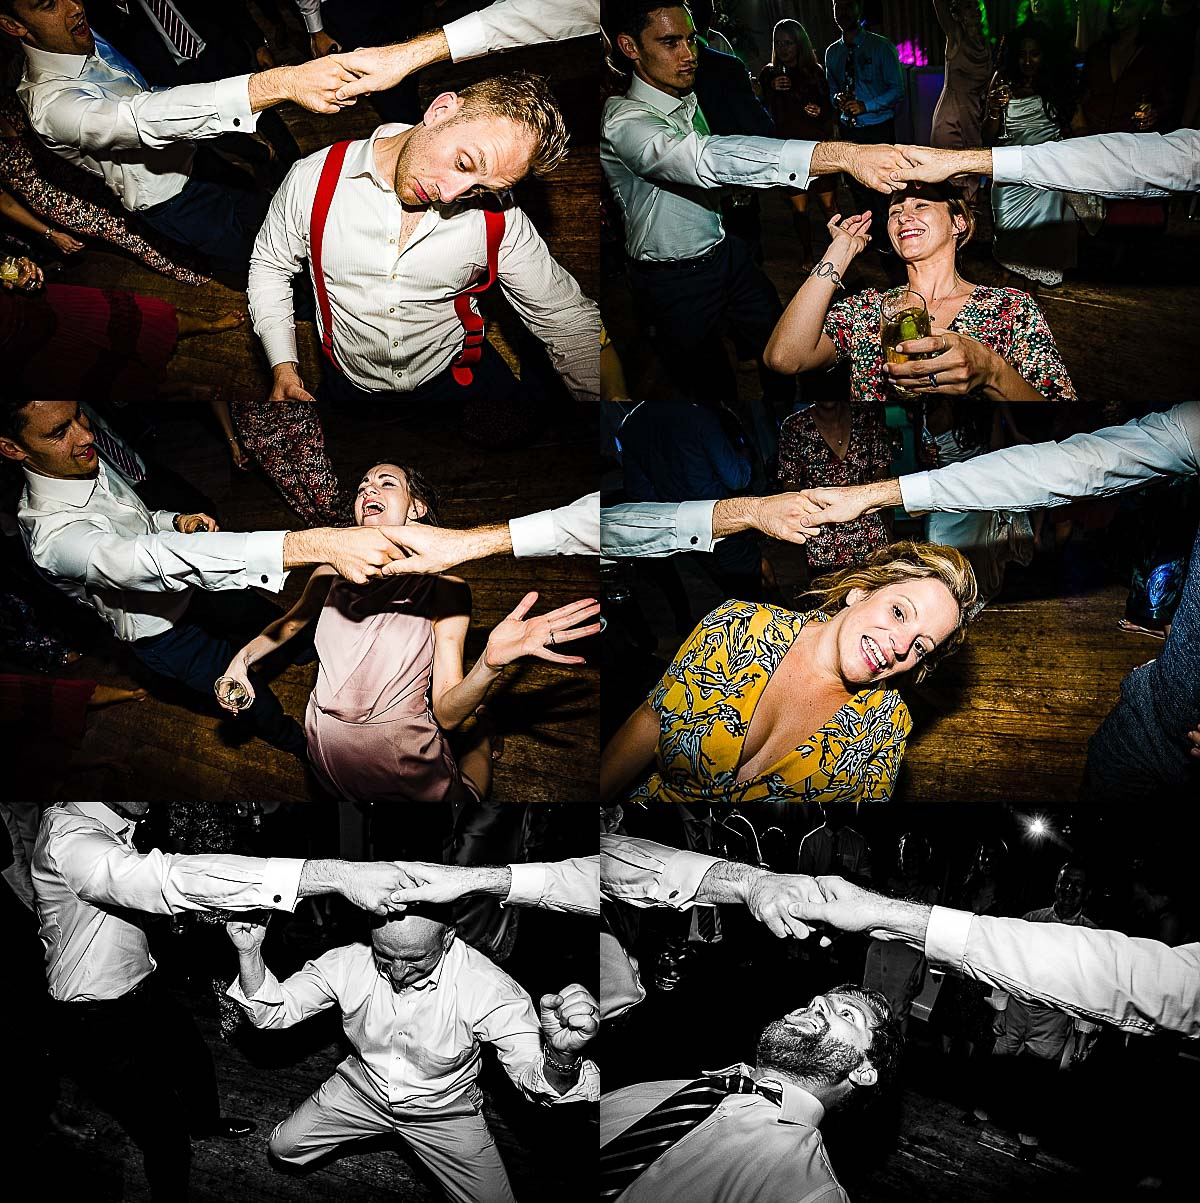 collection of guests playing limbo on the dance floor